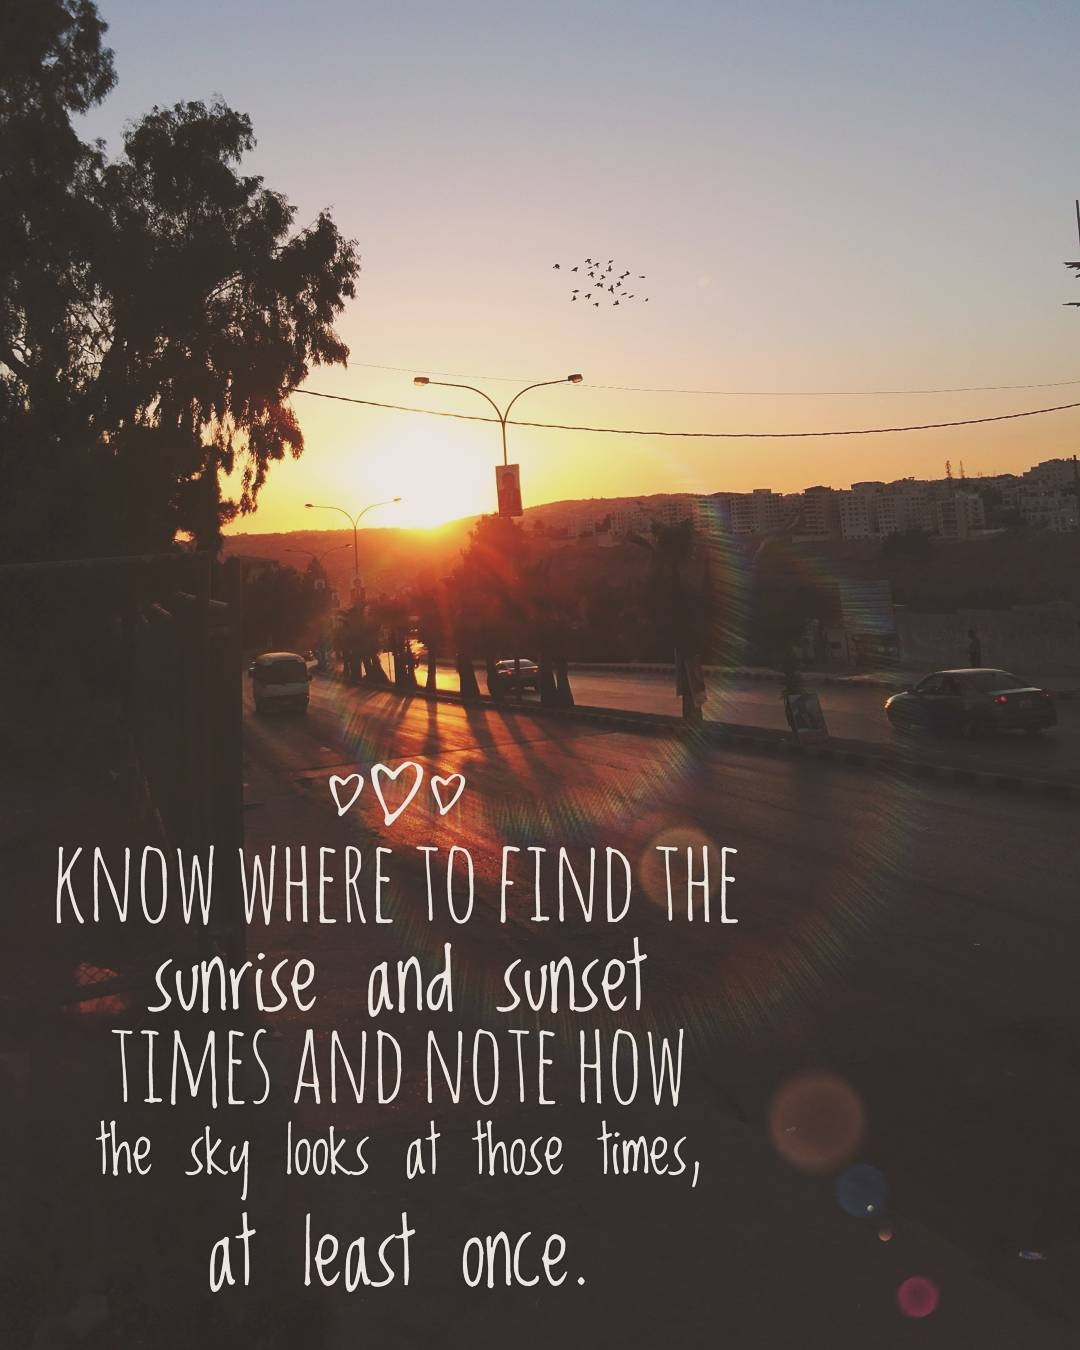 The sunset in Amman city Jordan Amman sunset quotes